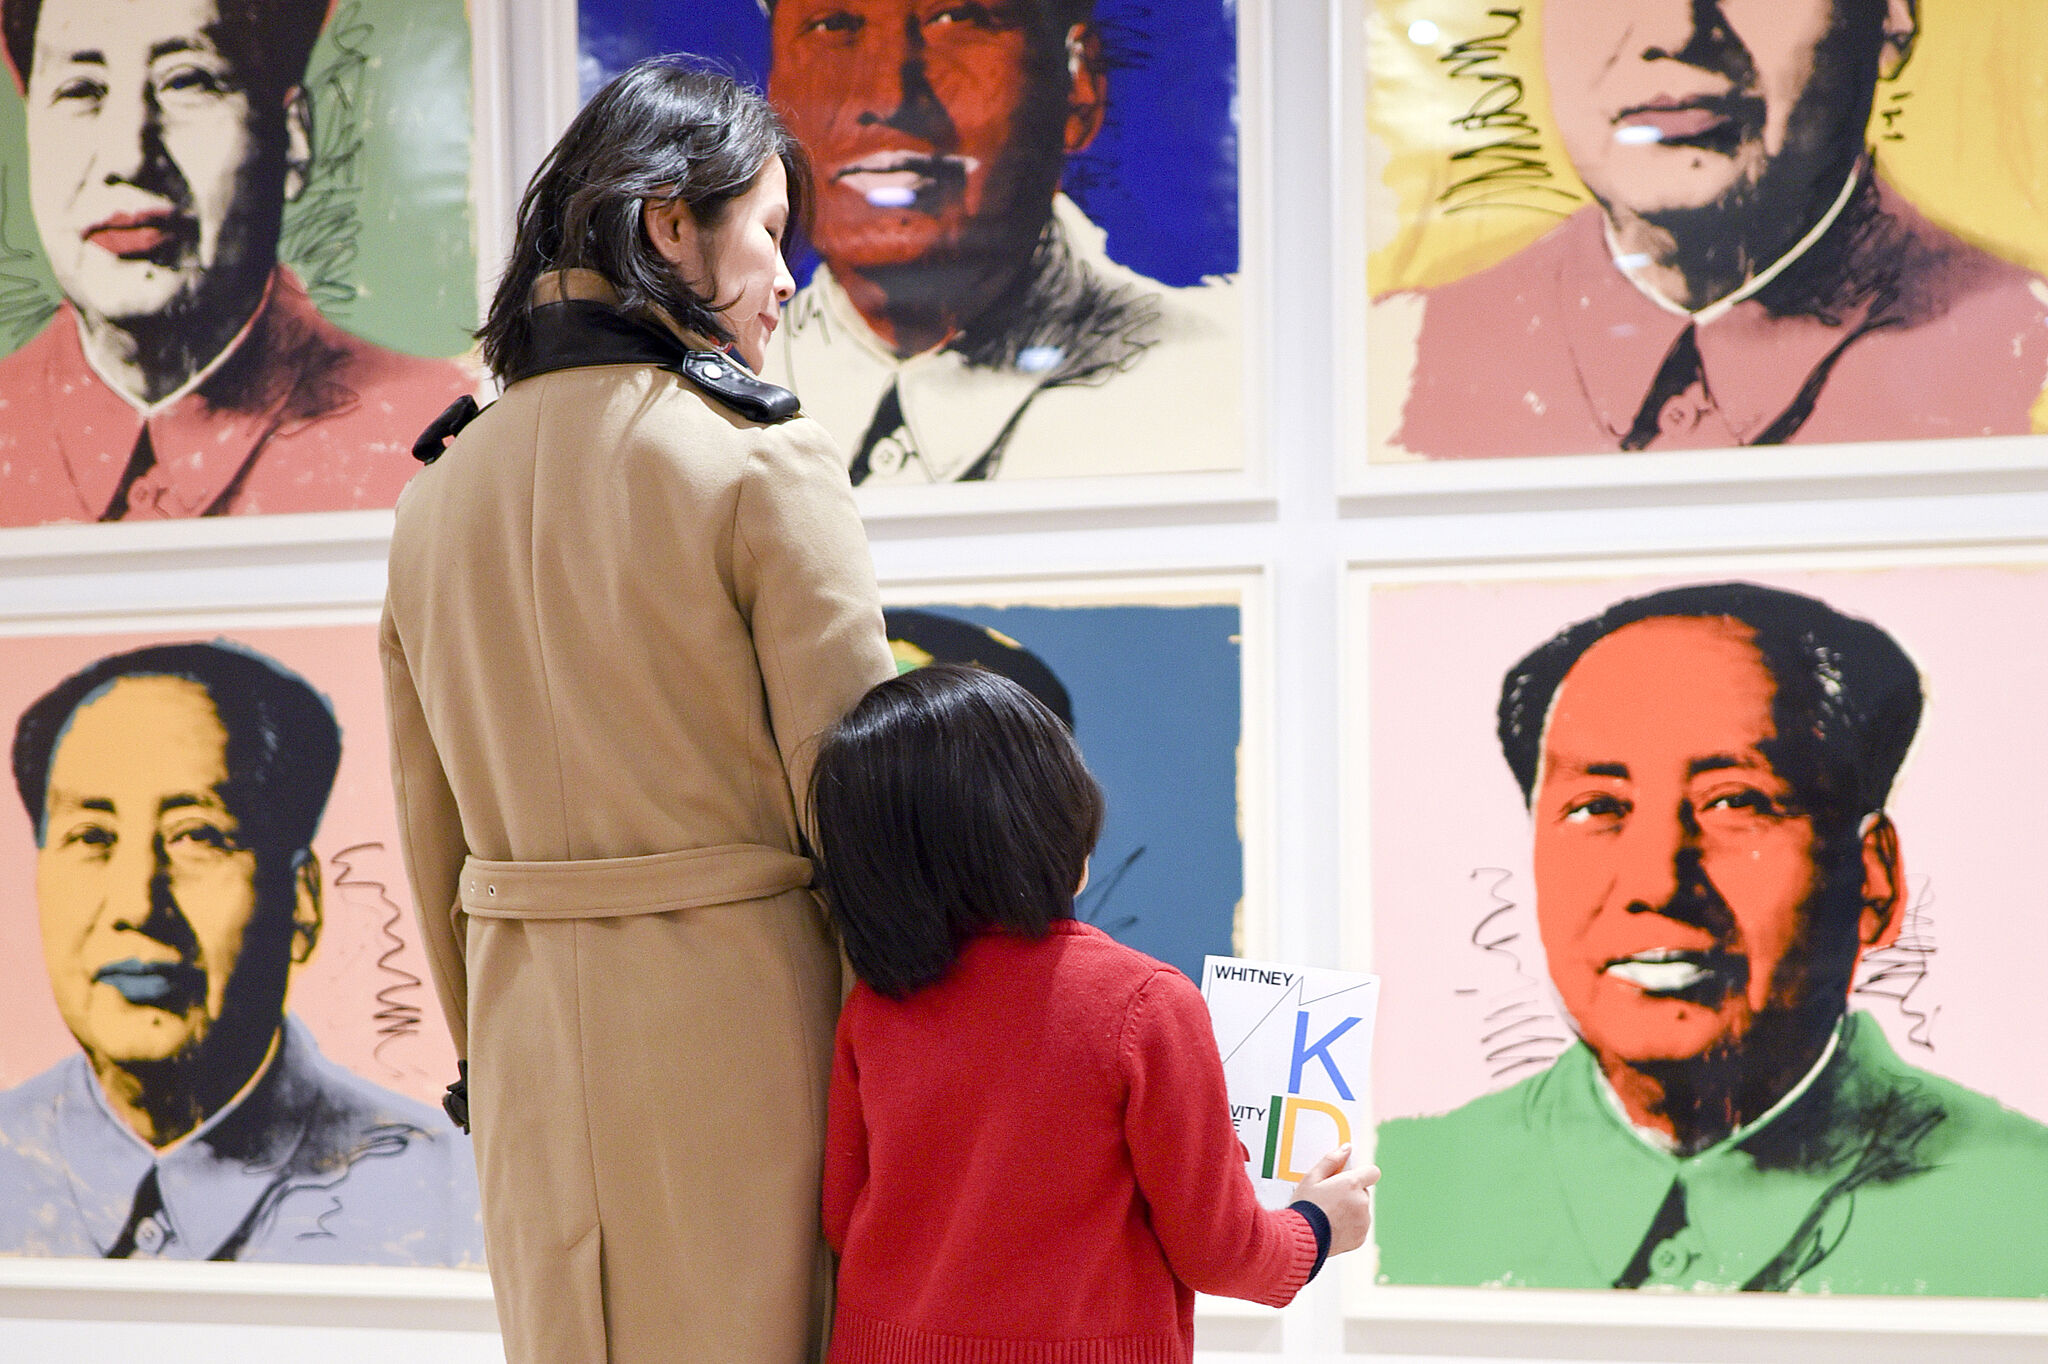 A parent and child look at Warhol's Mao paintings